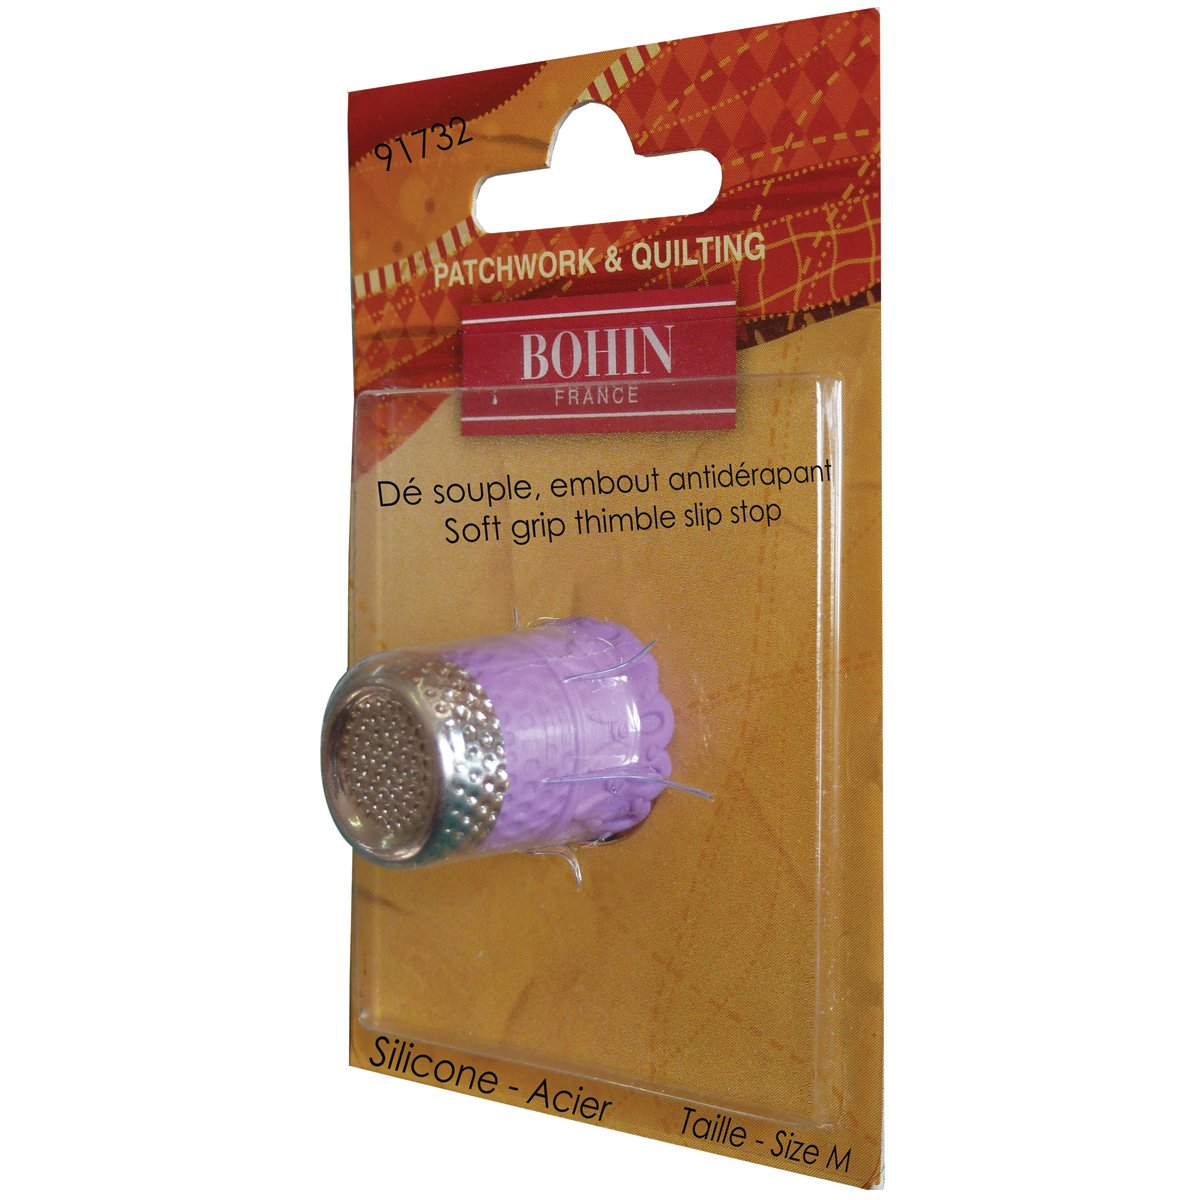 Bohin Silicone Thimble with Steel Top, Medium 917-32